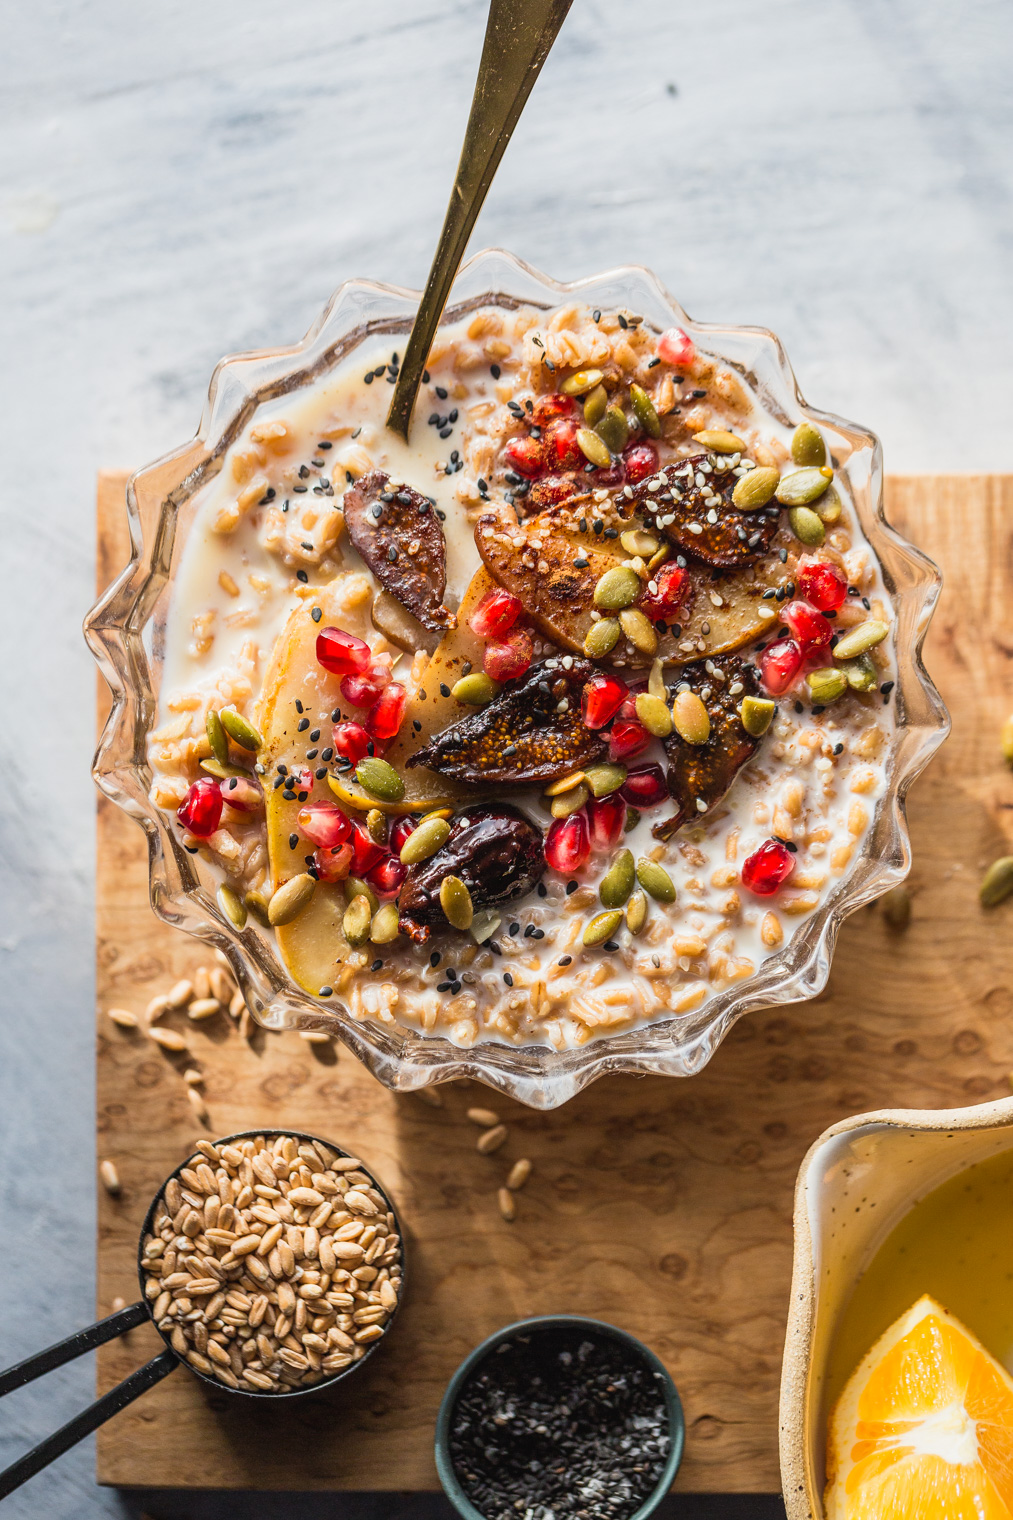 Seedy Farro Breakfast Bowl Recipe With Warmed Figs & Pears